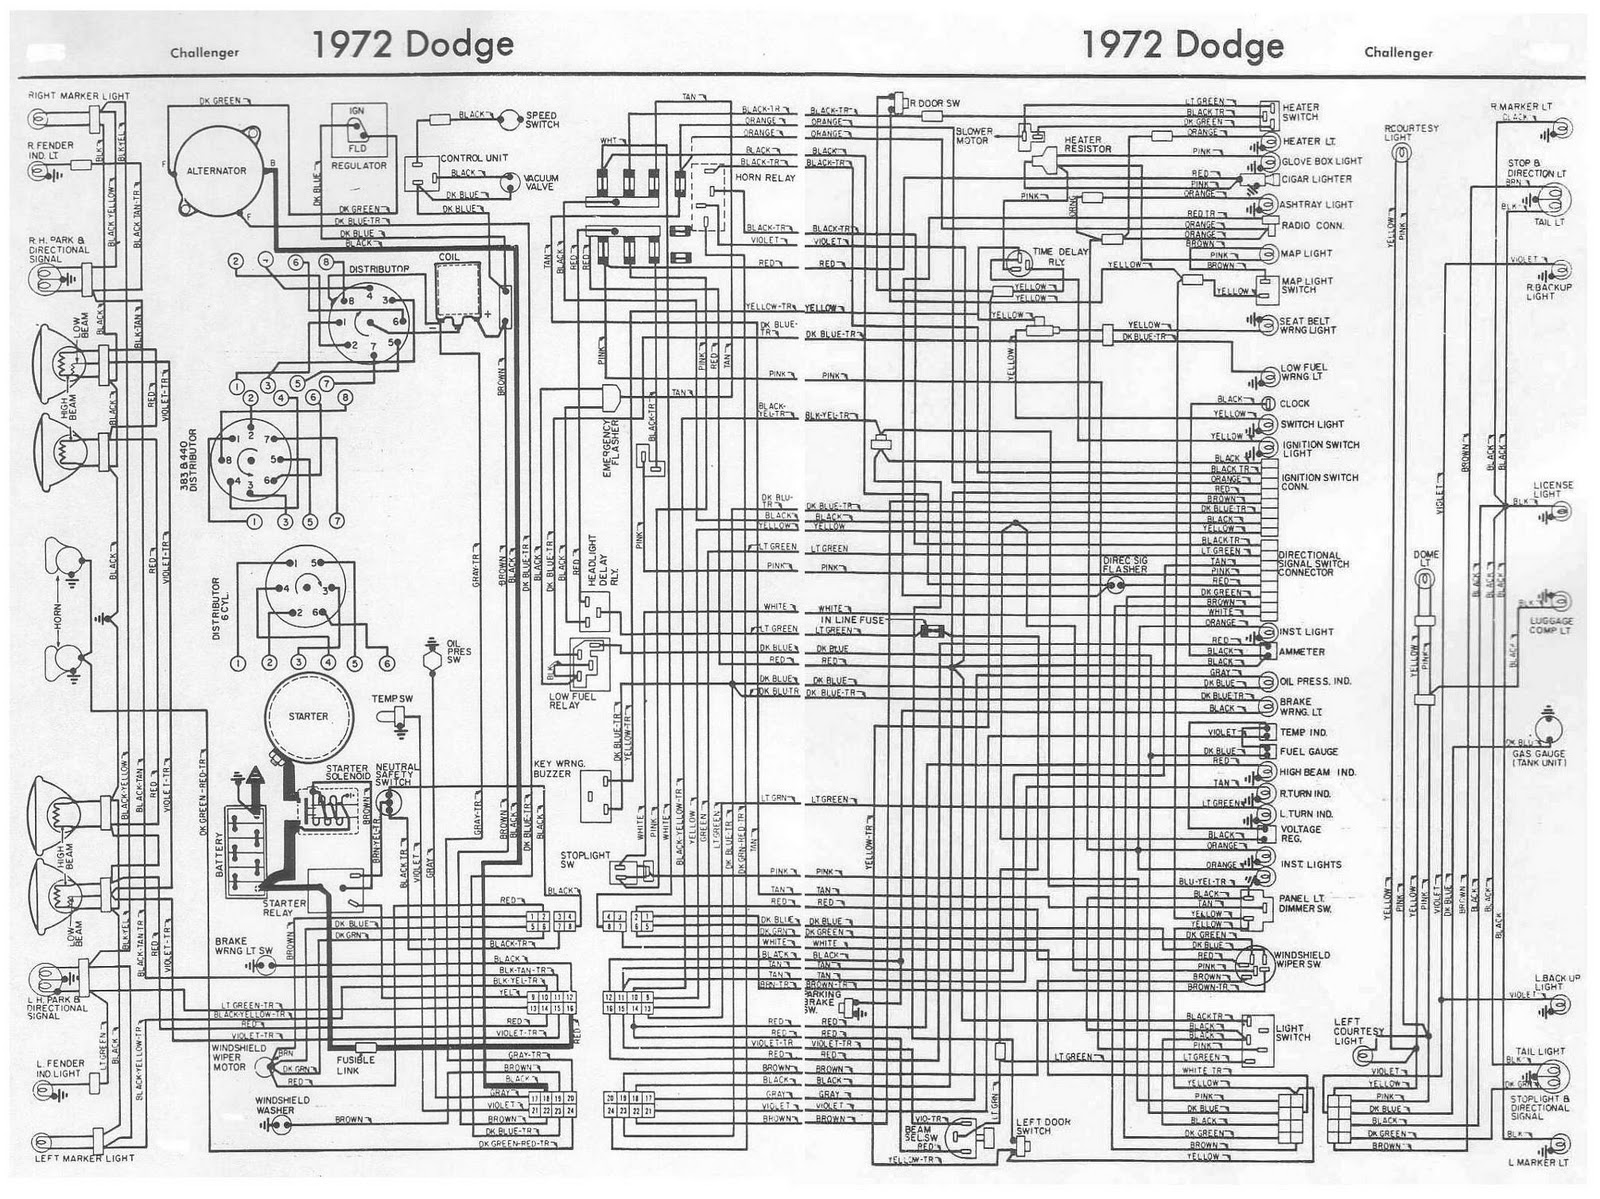 dodge challenger wire diagram dodge challenger wiring diagram dodge wiring diagrams online description dodge challenger 1972 complete wiring diagram